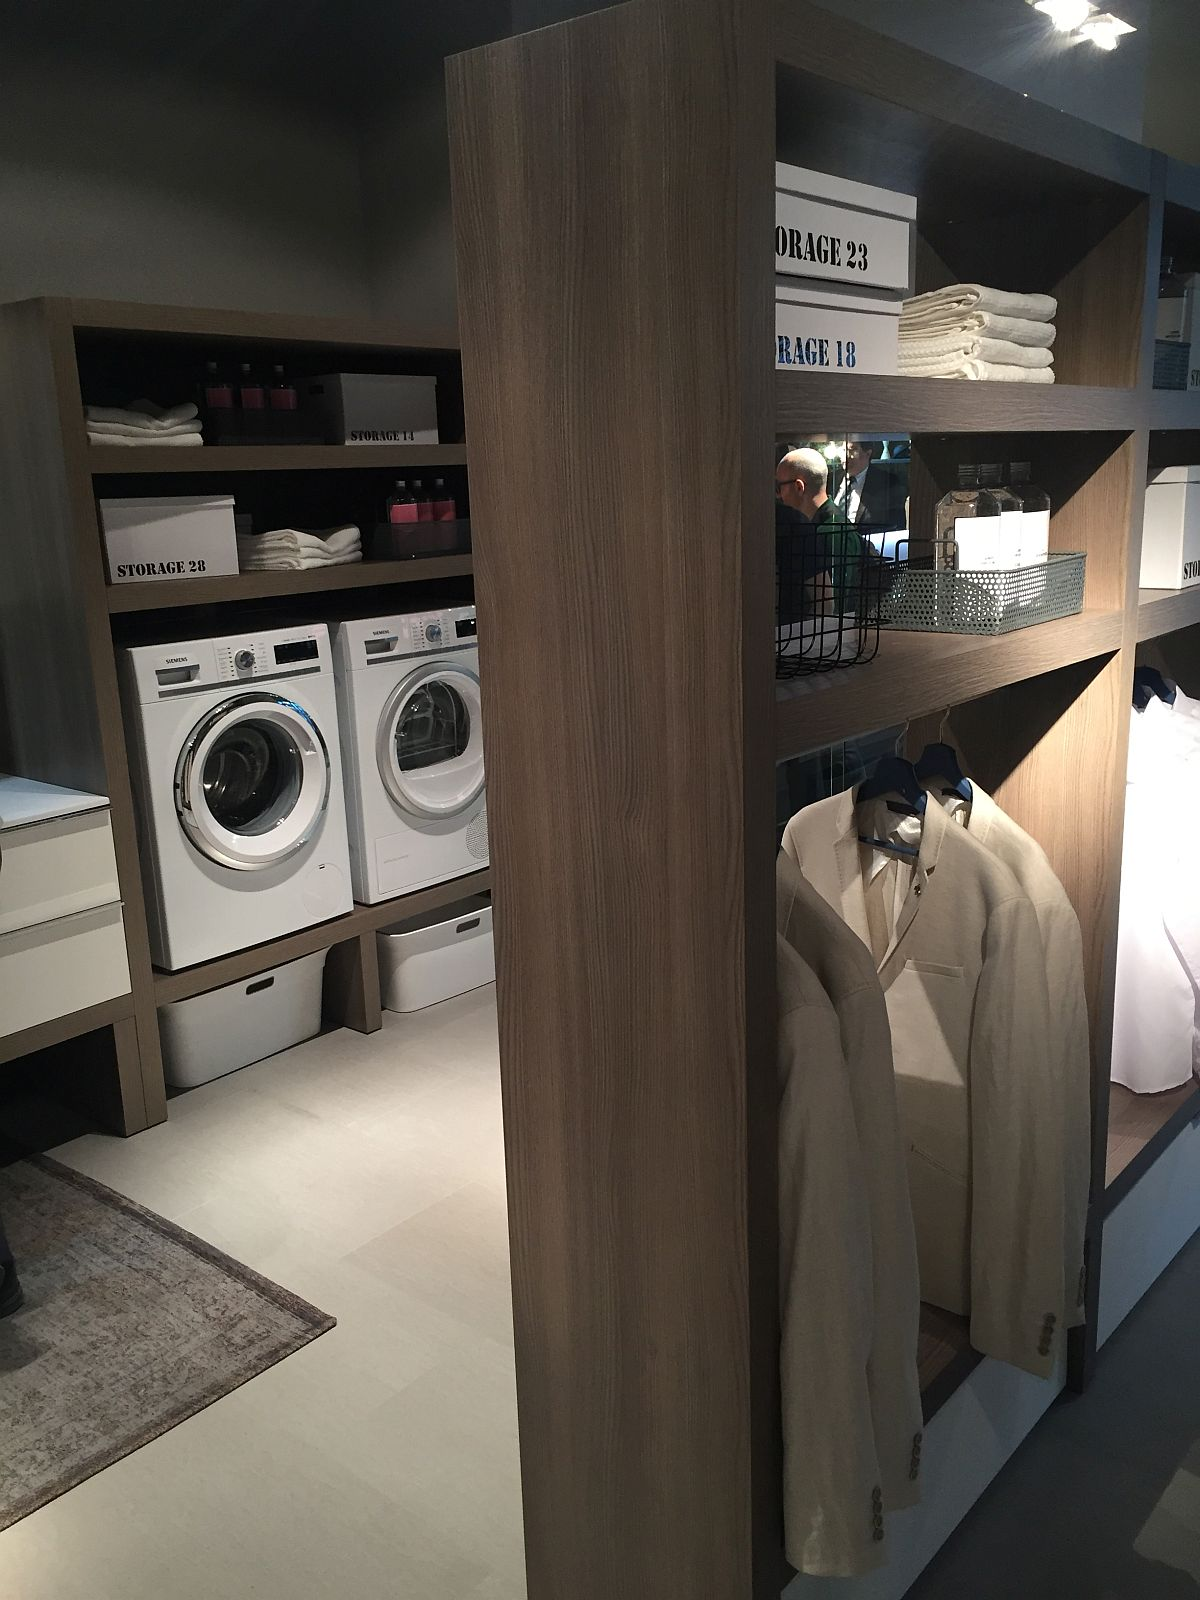 Combine your bedroom wardrobe and laundry needs into one